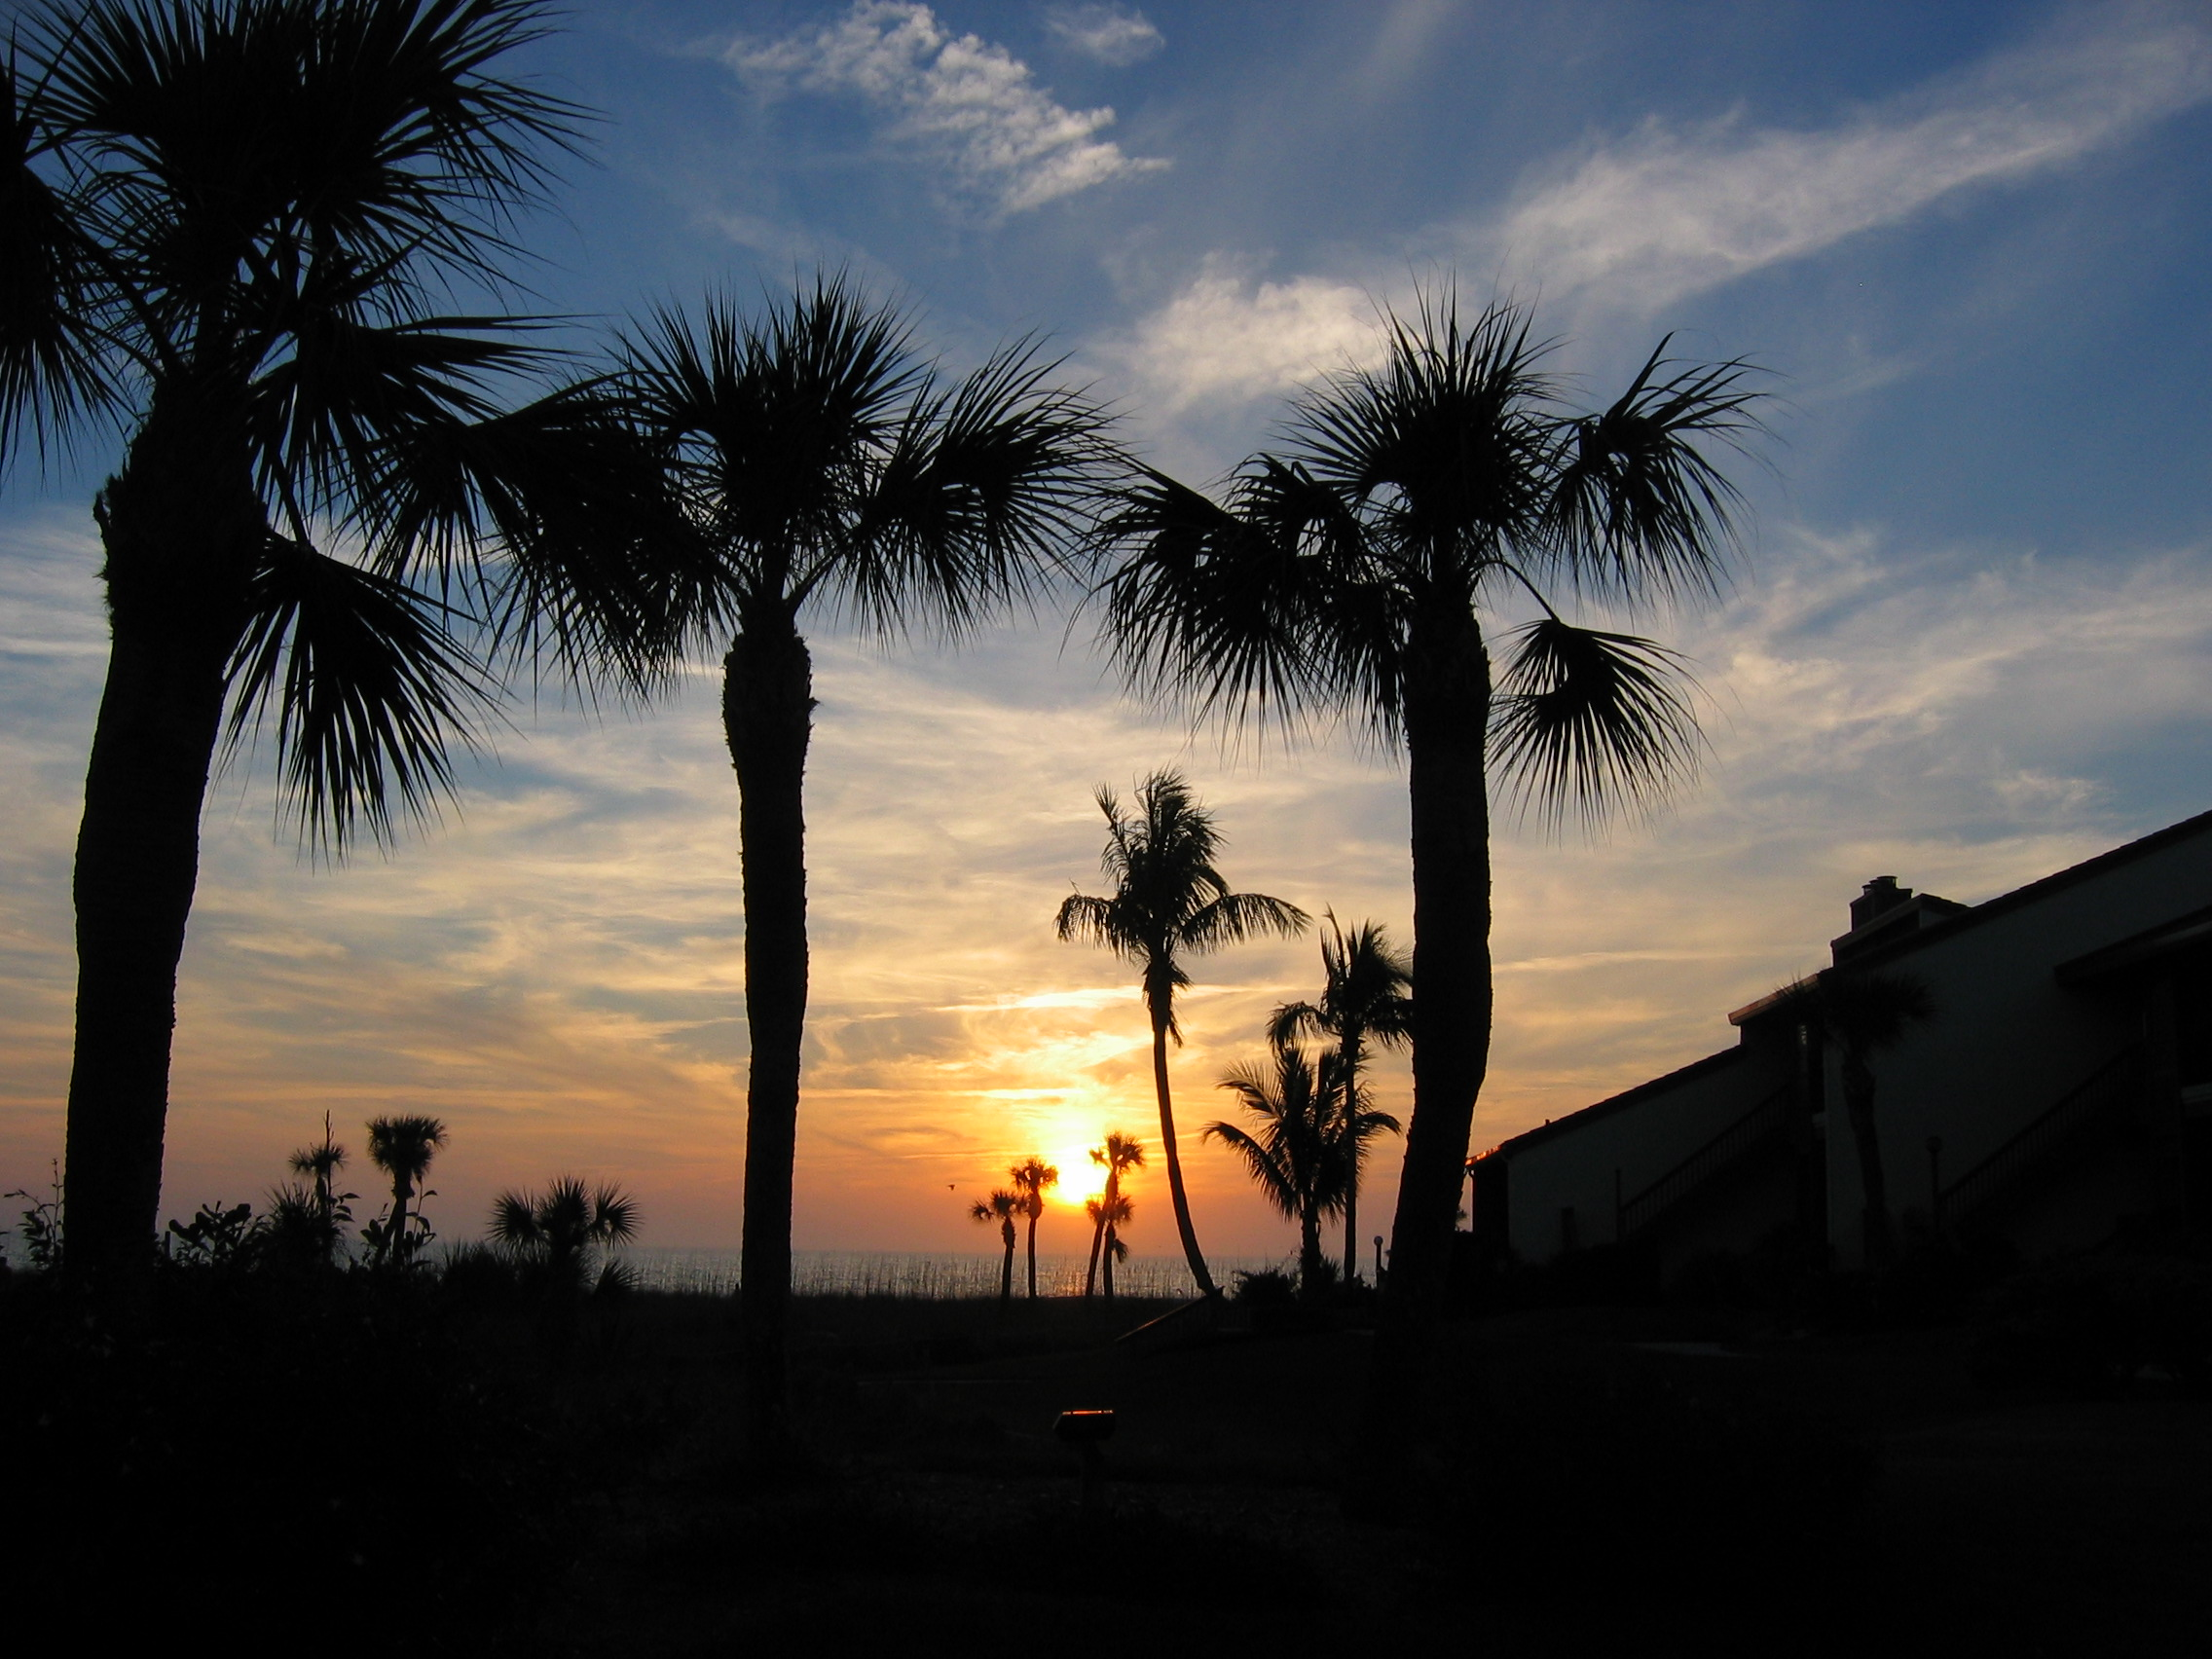 A beautiful Siesta Key sunset! Blair's getting to be a pretty good photographer, isn't he?